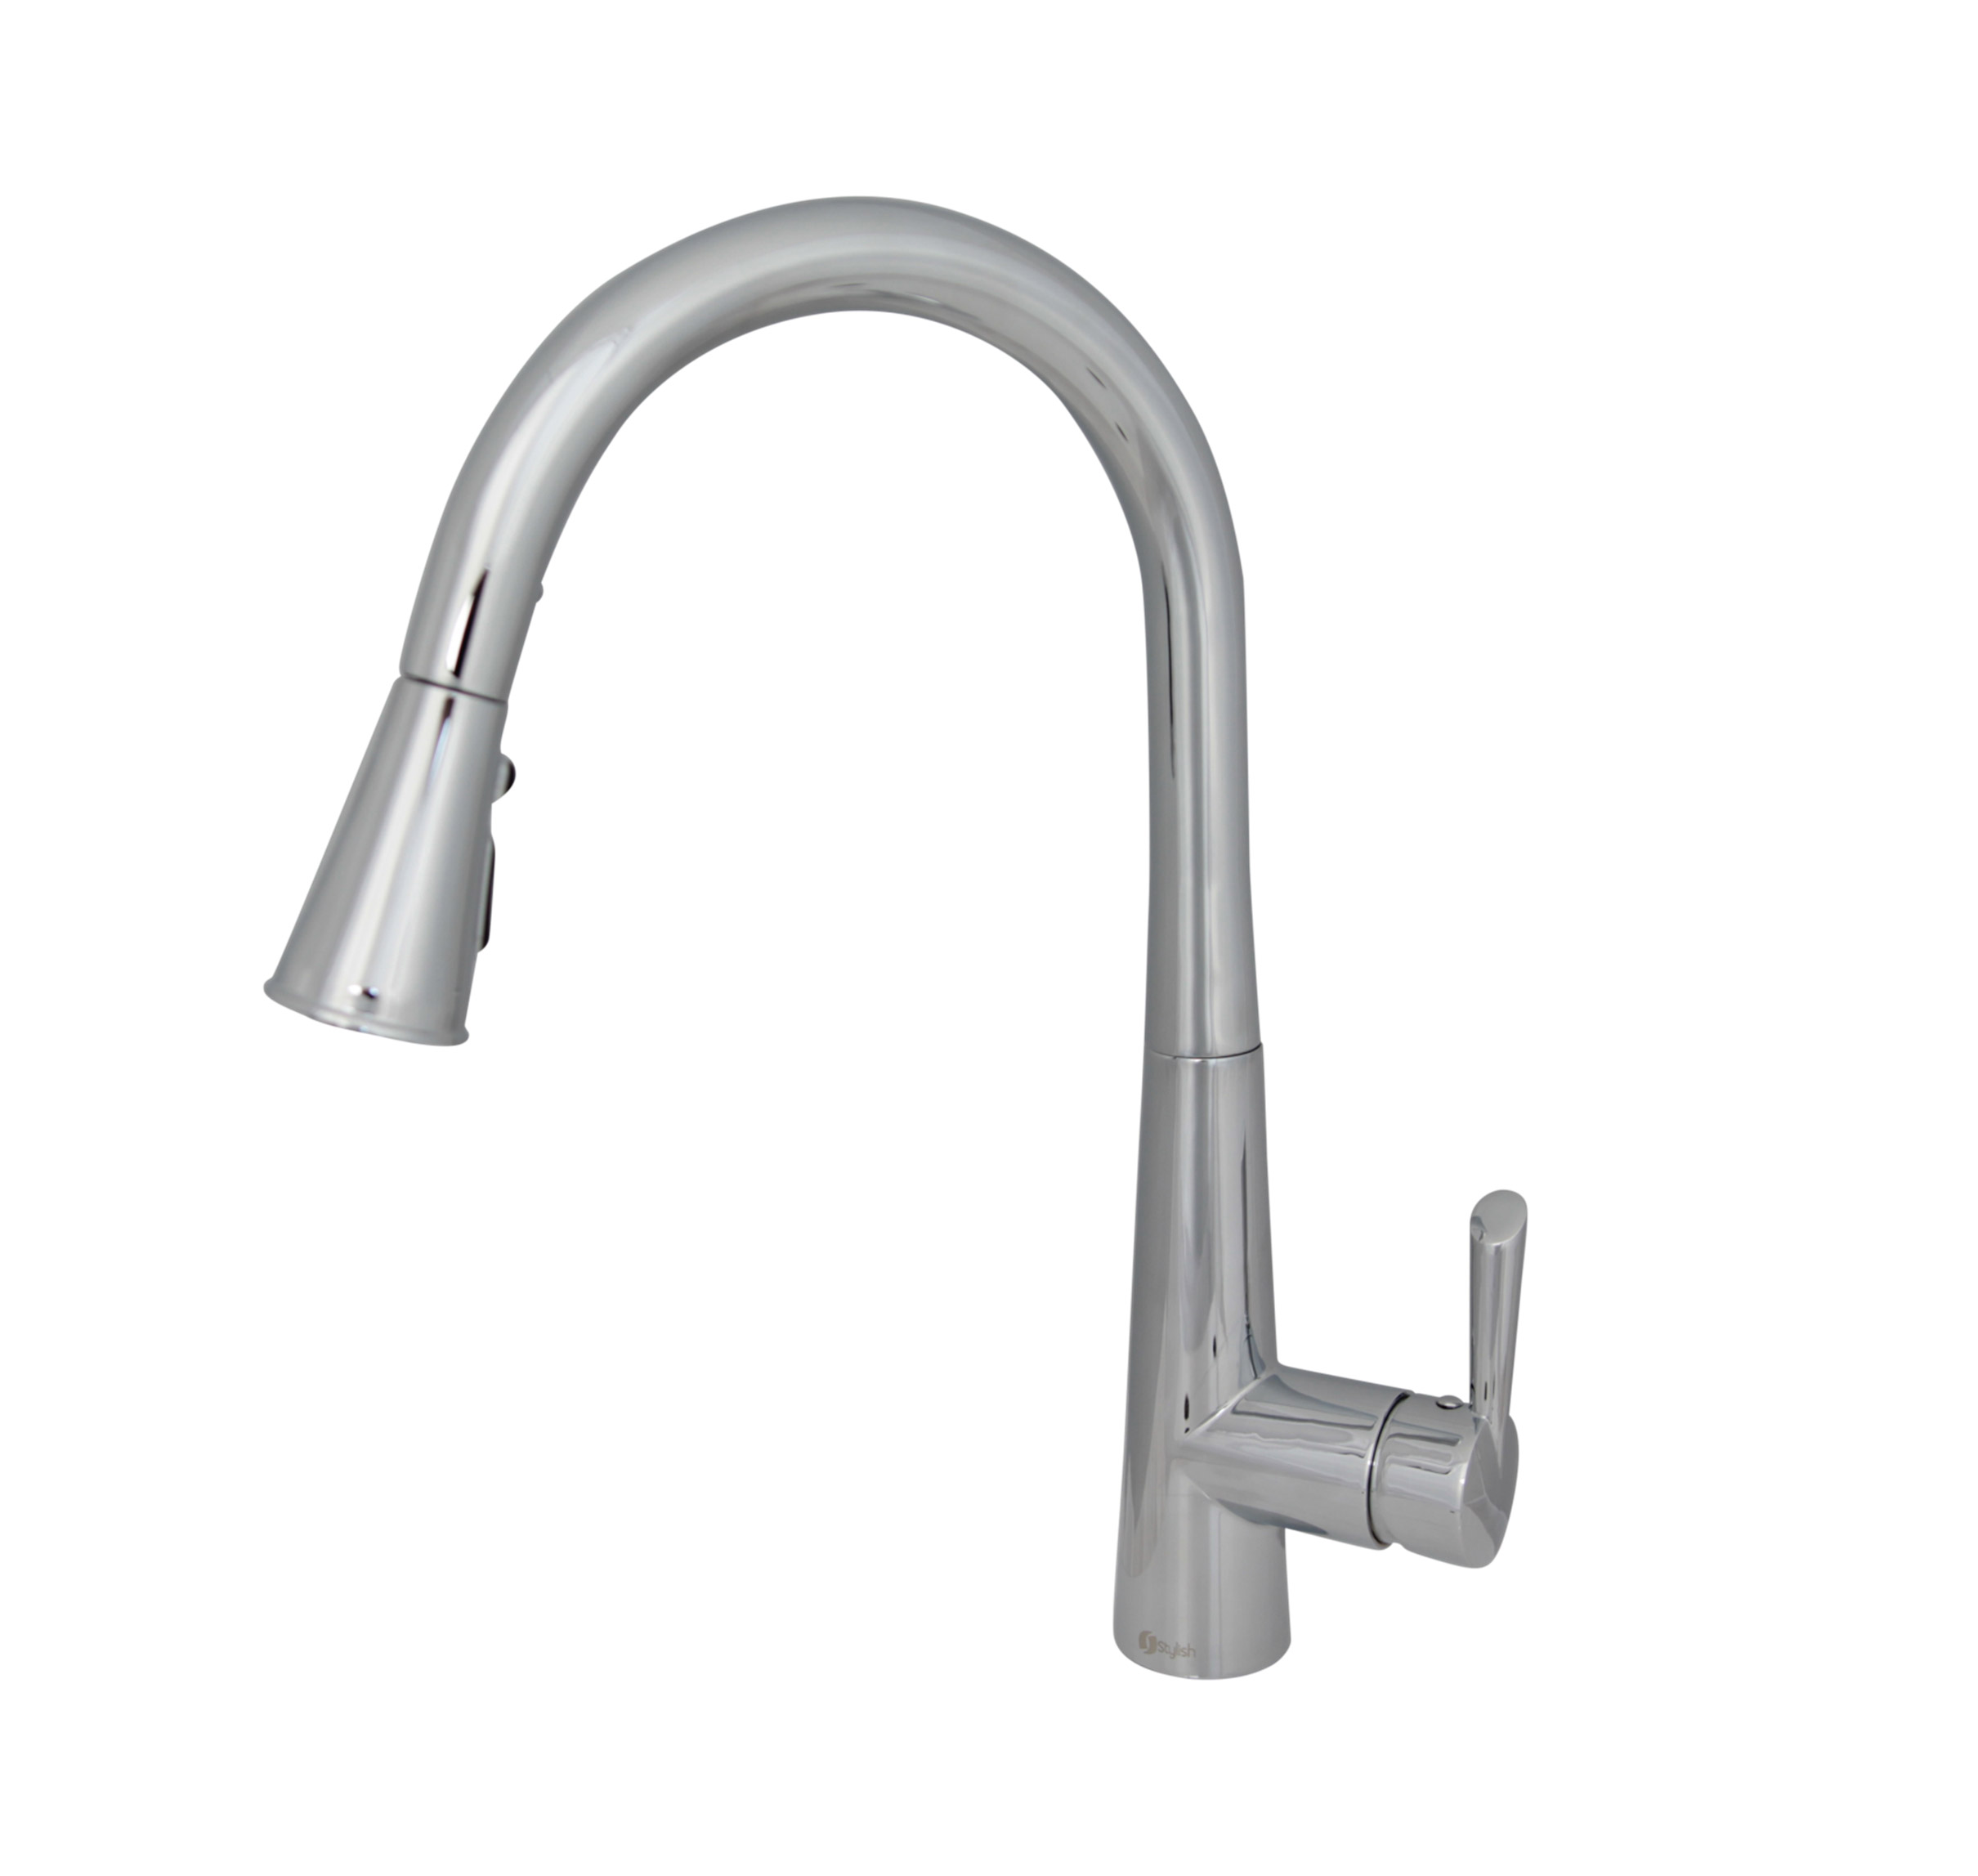 Stylish - K-106C  - Pull Down Single Handle Kitchen Faucet - Chrome